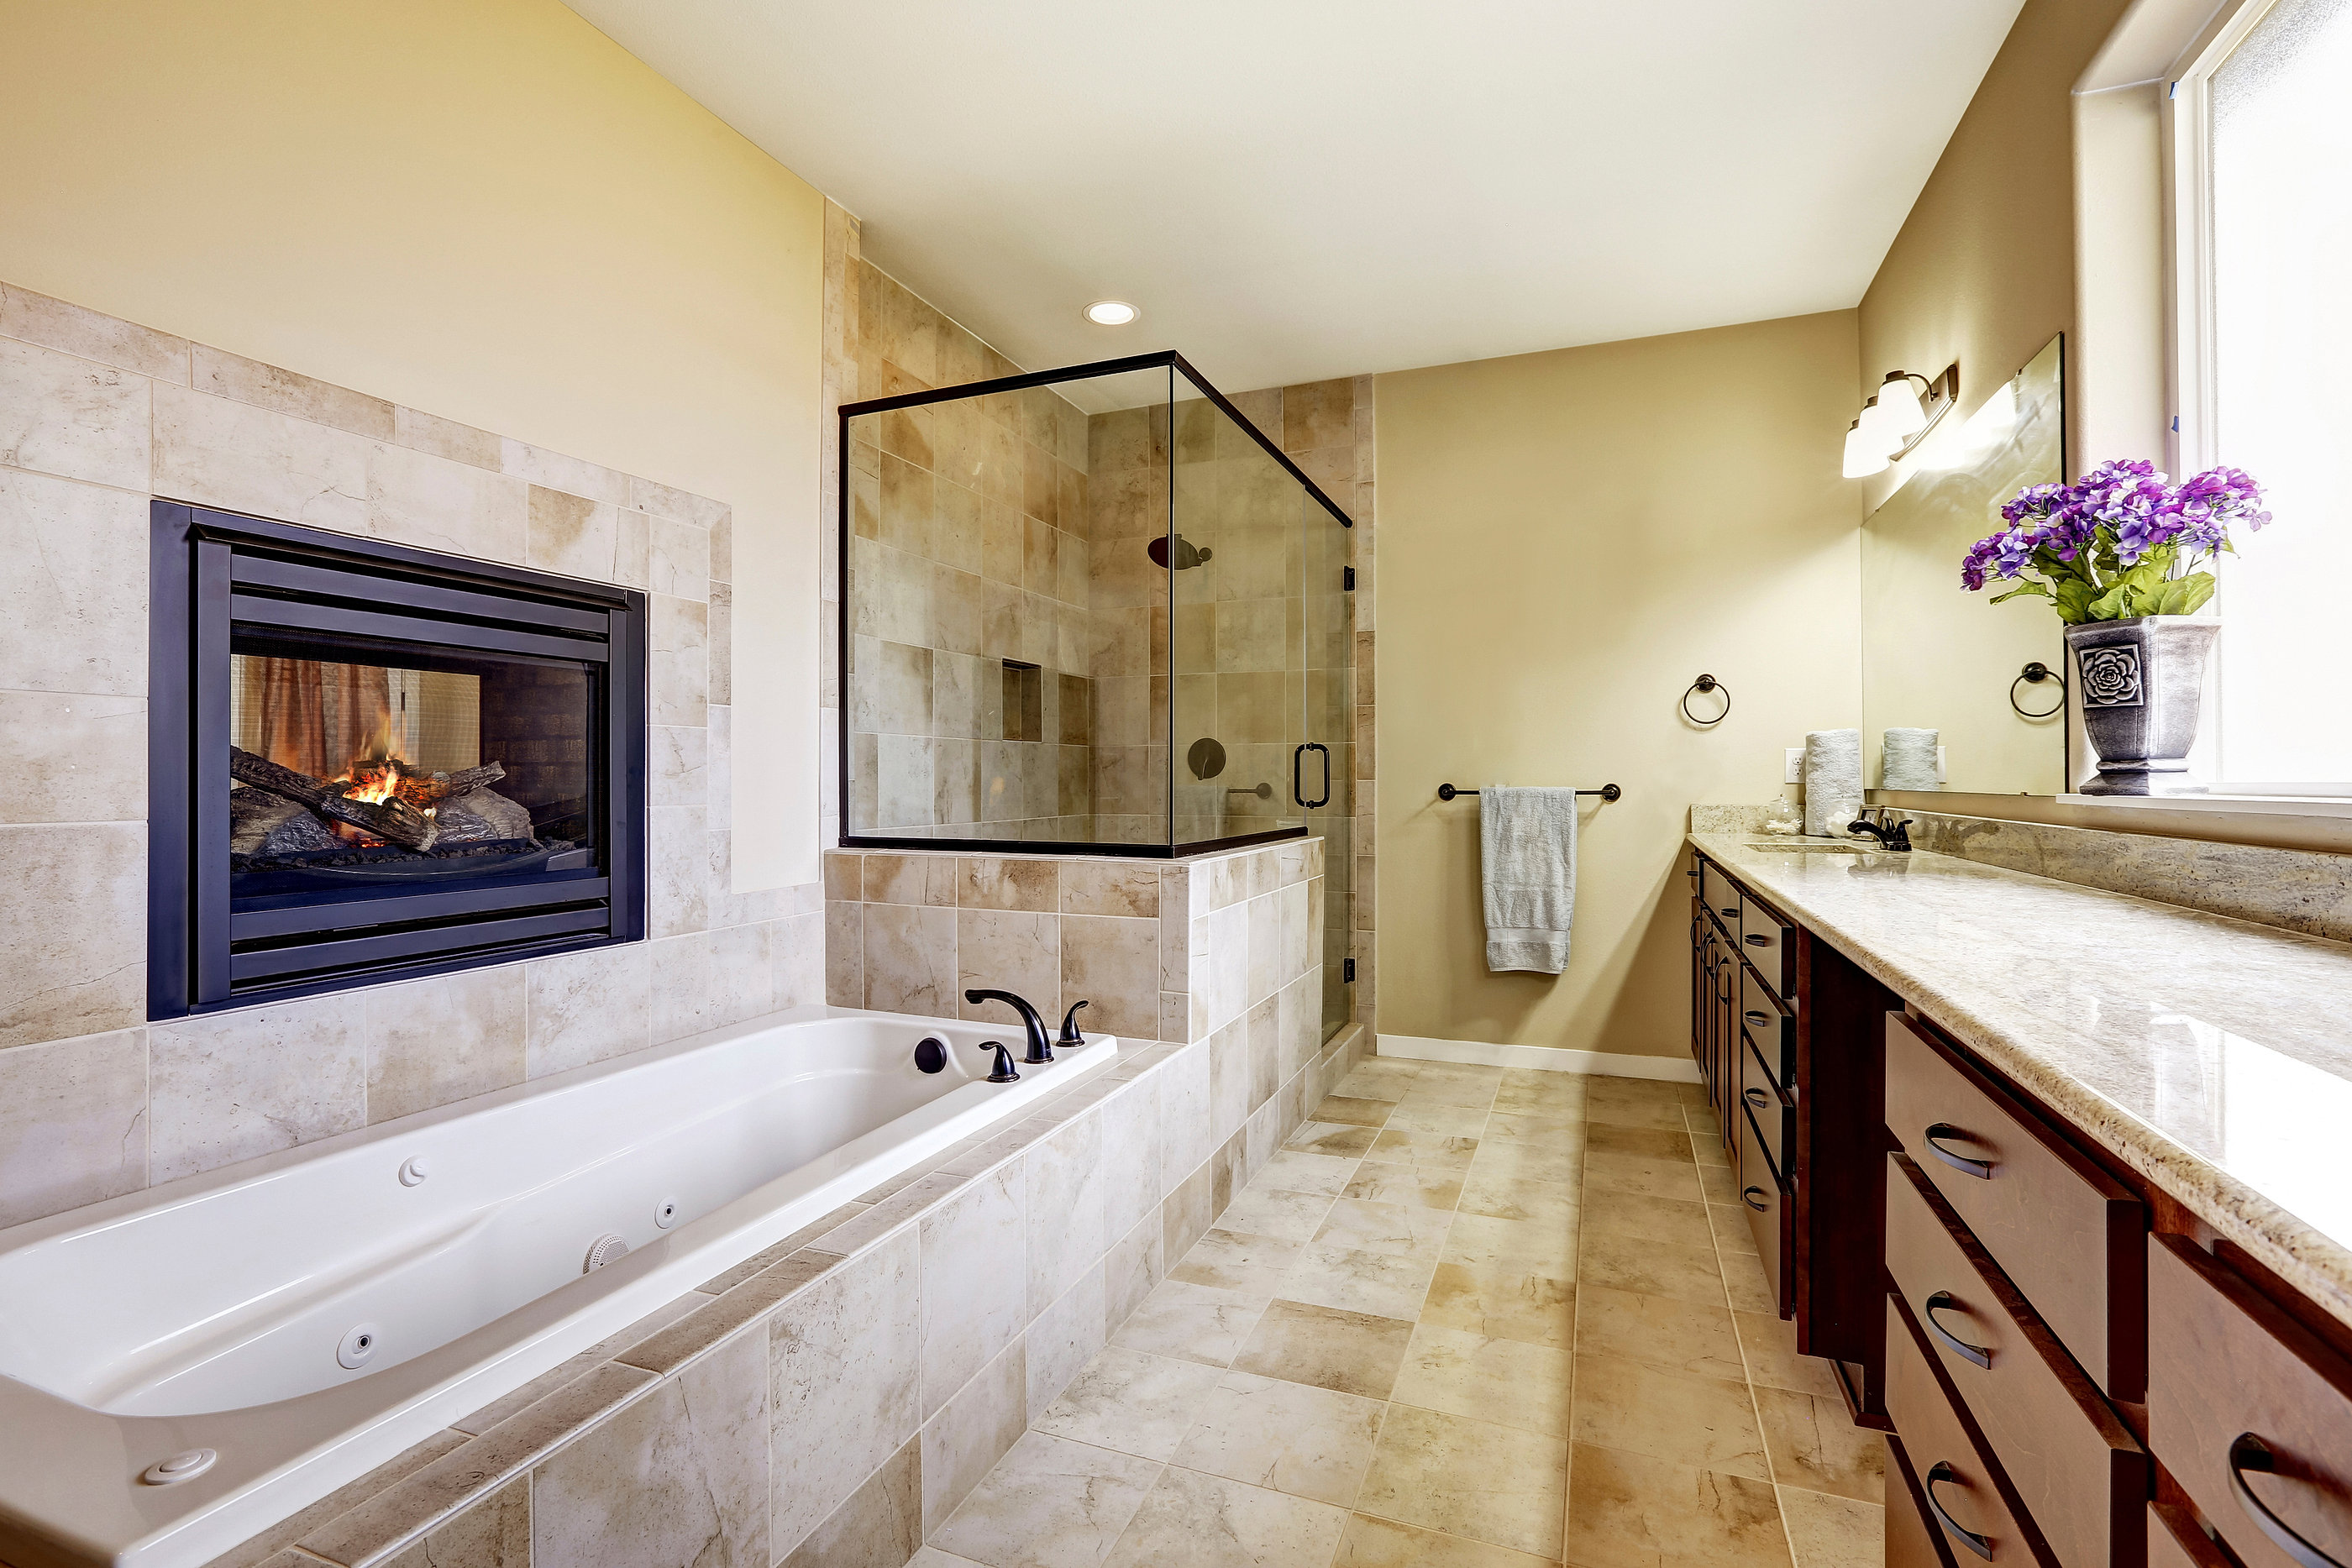 modern mansion master bathroom in house with fireplace and tile